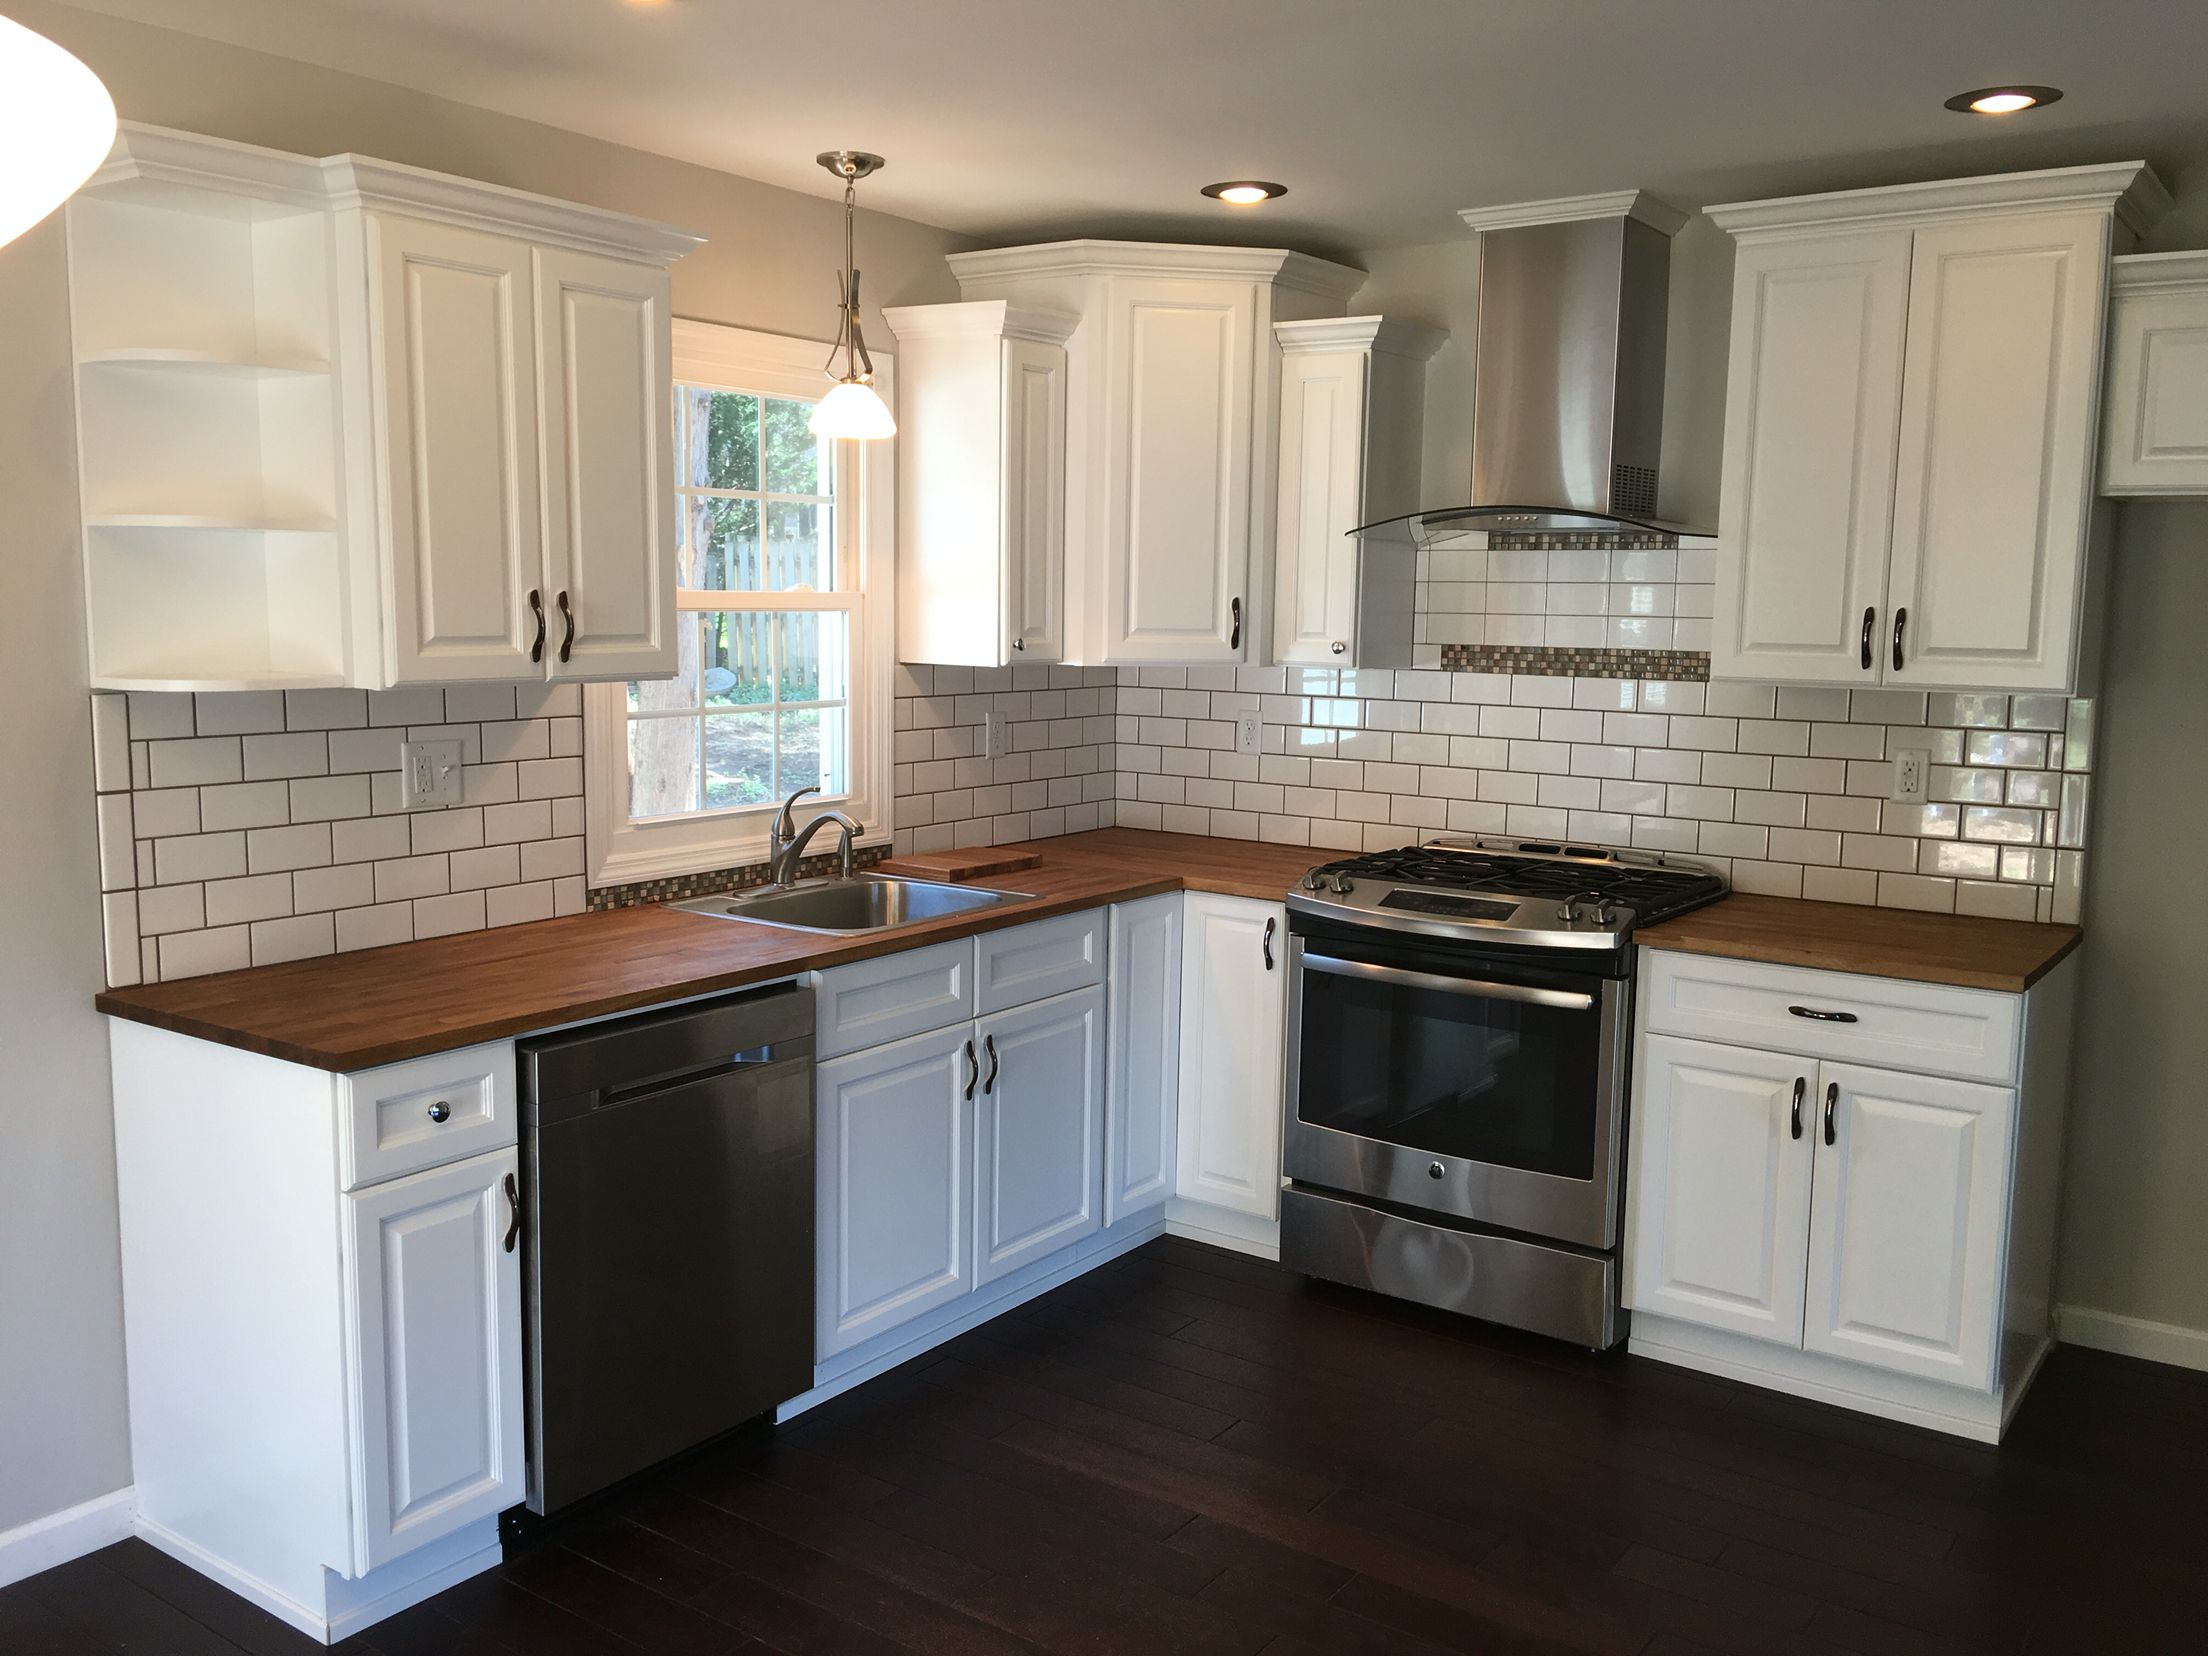 Fabuwood Hallmark Frost Cabinets Kitchen Design Kitchen Remodel Kitchen